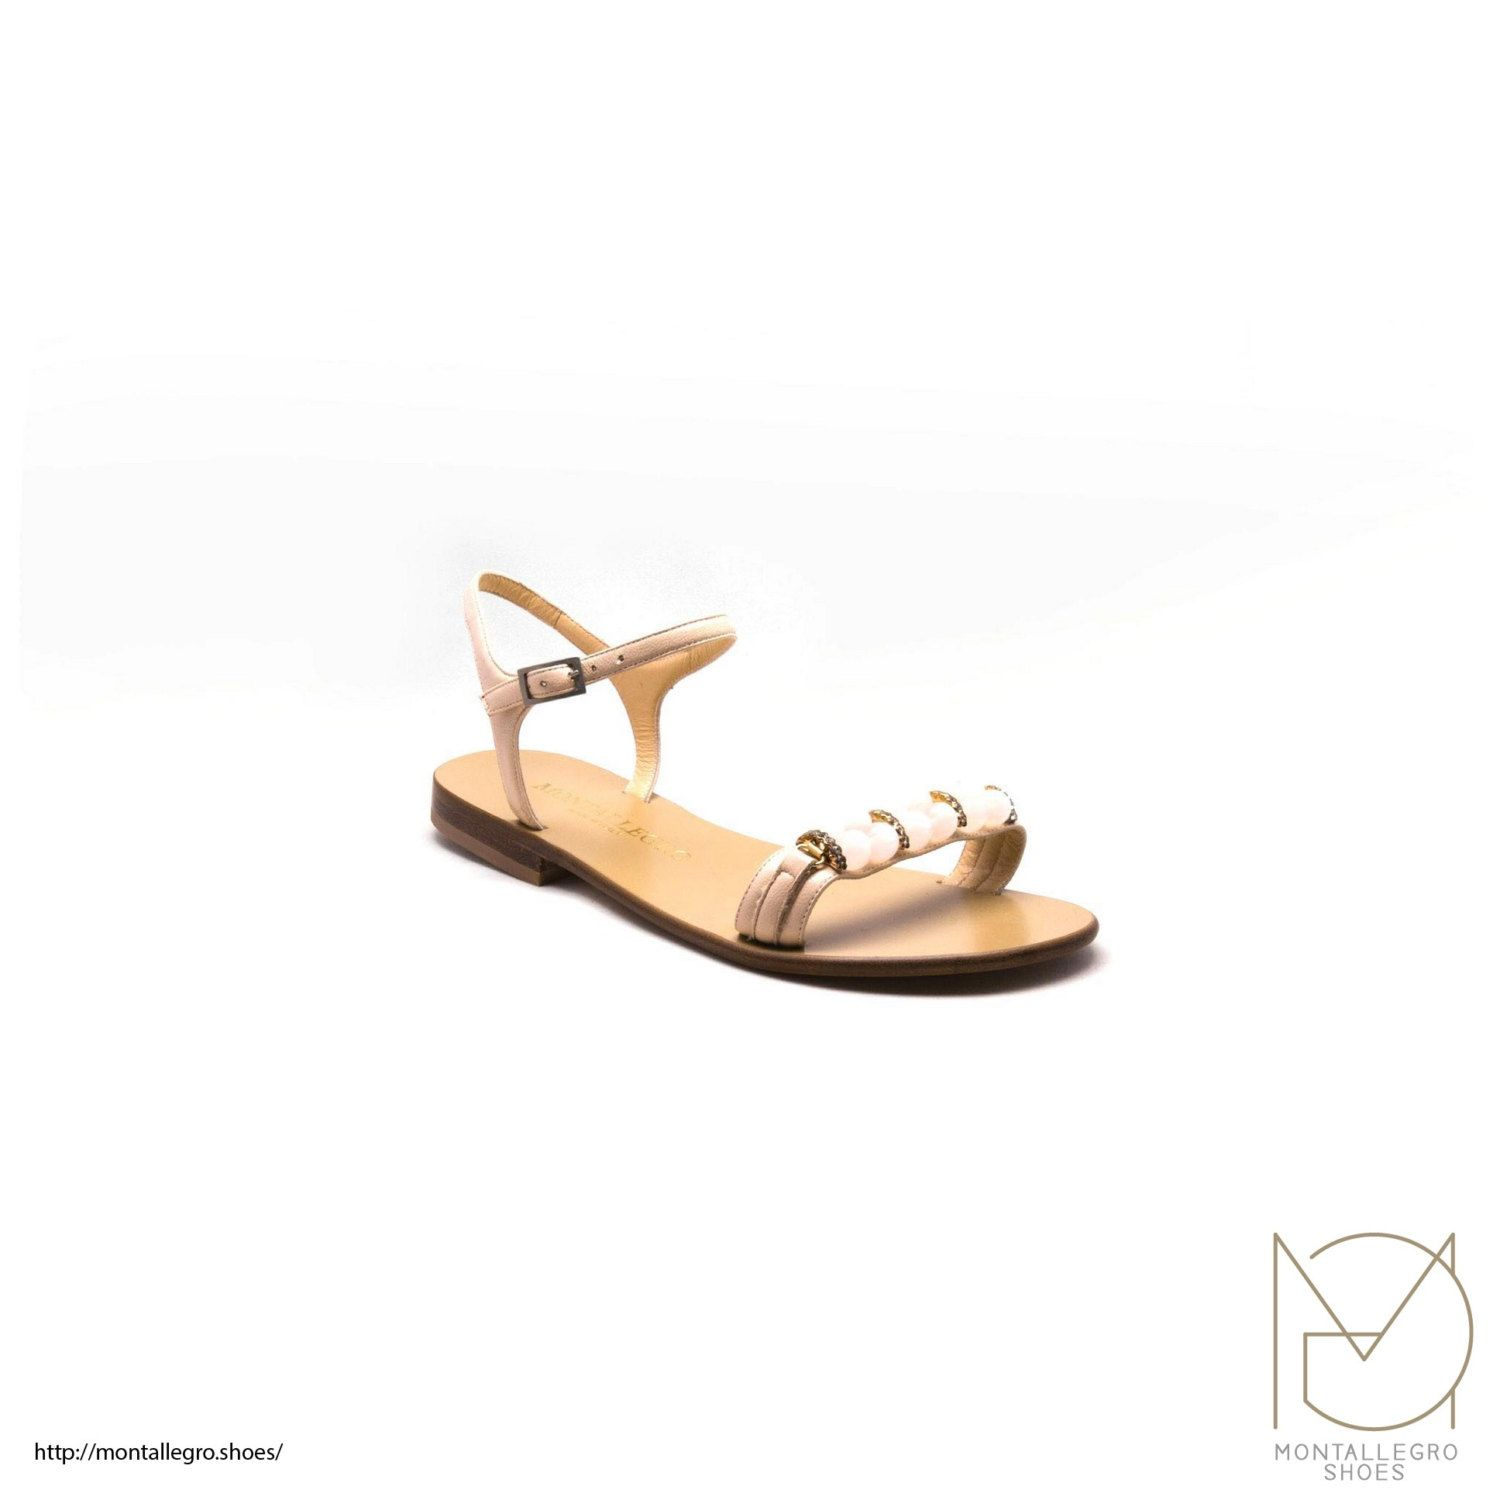 Zoagli - Handcrafted Leather Sandal,Slipper and Flip flop di MontallegroShoes su Etsy